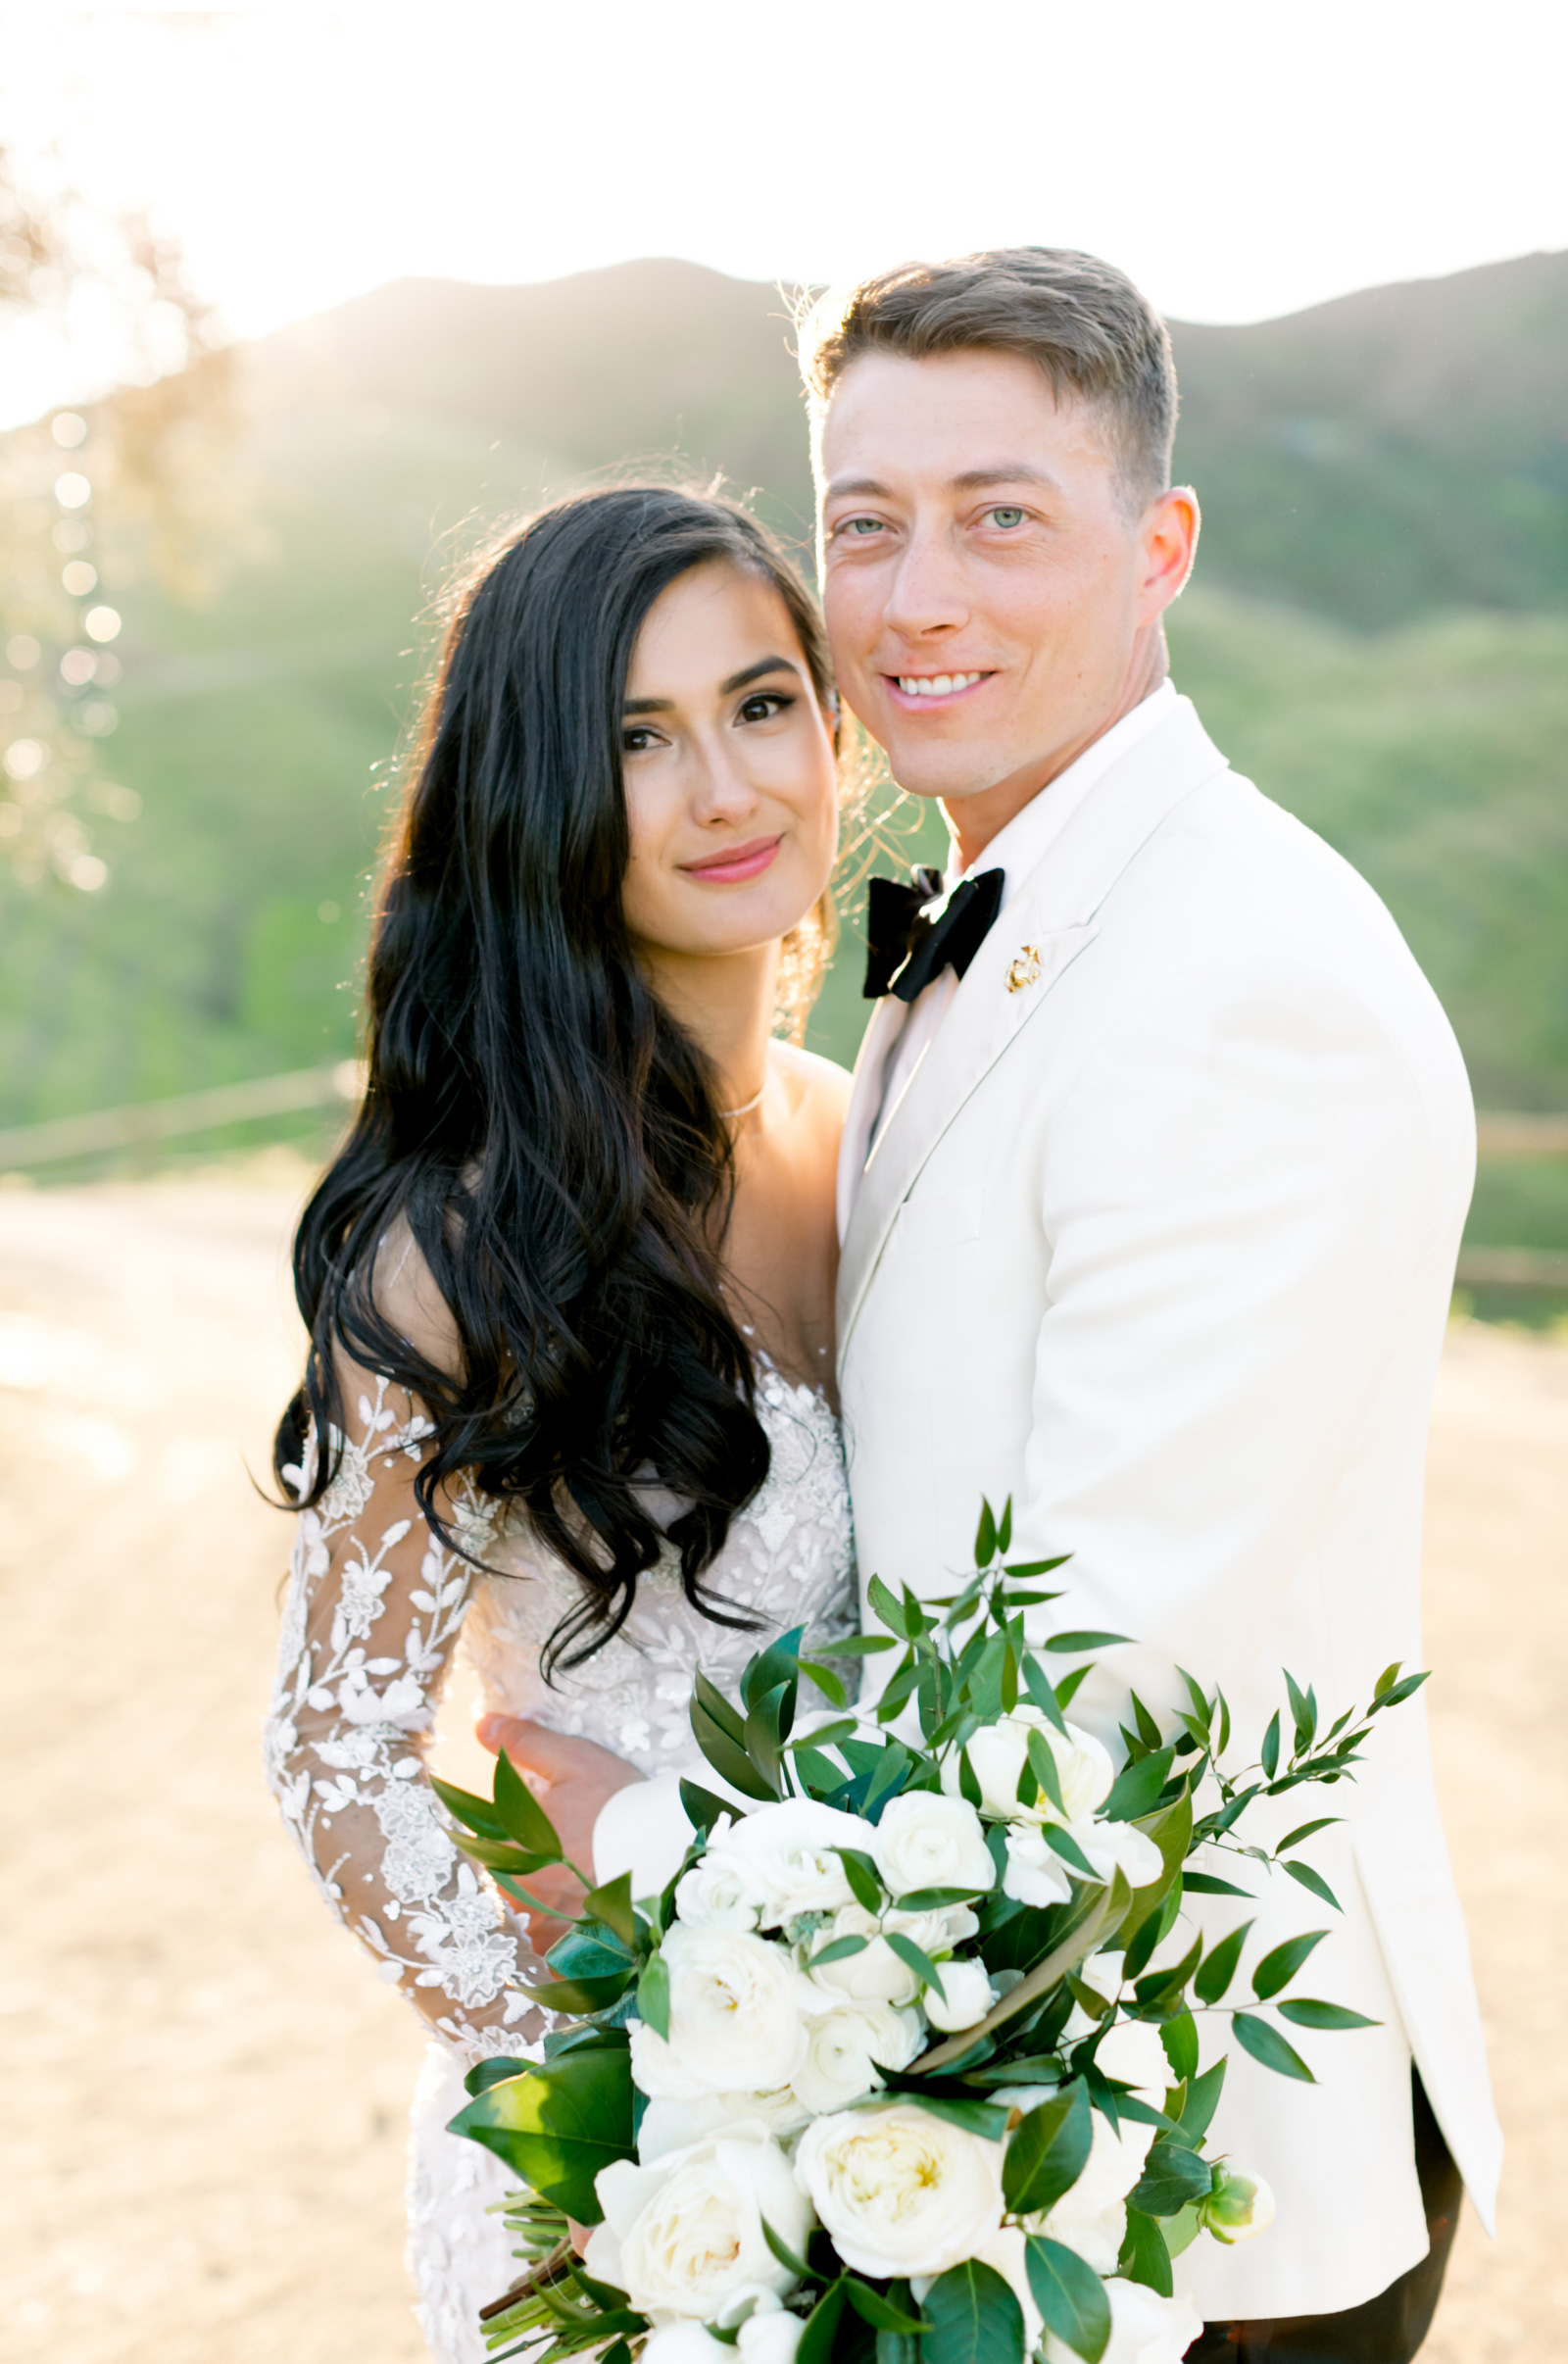 Style-Me-Pretty-Malibu-Wedding-Venues-Southern-California-Wedding-Photographer-Triunfo-Creek-Malibu-Photographer-Natalie-Schutt-Photography_09.jpg